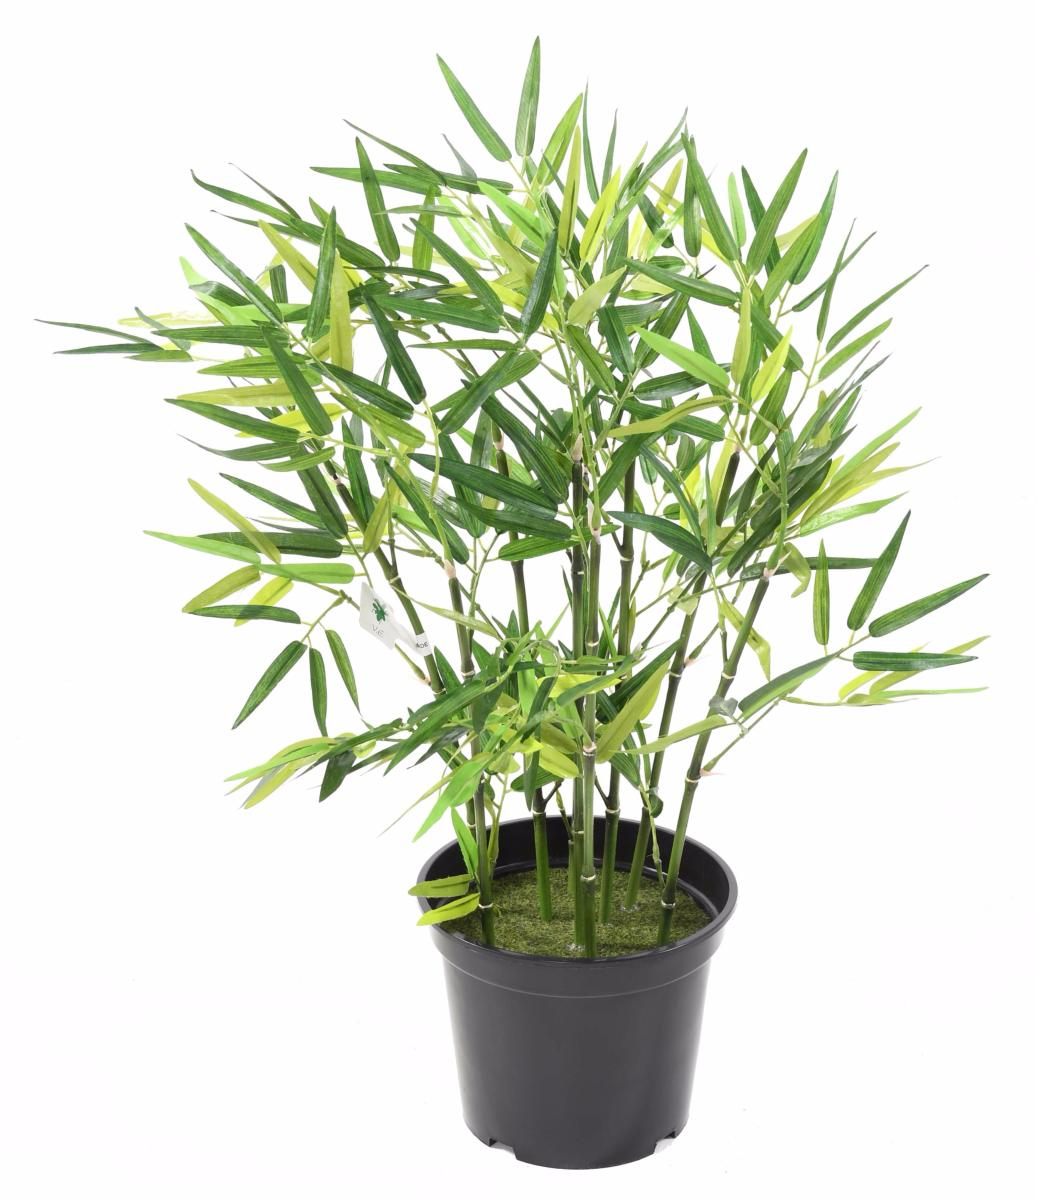 Bambou artificiel arbuste cannes vertes plante d for Arbuste artificiel exterieur